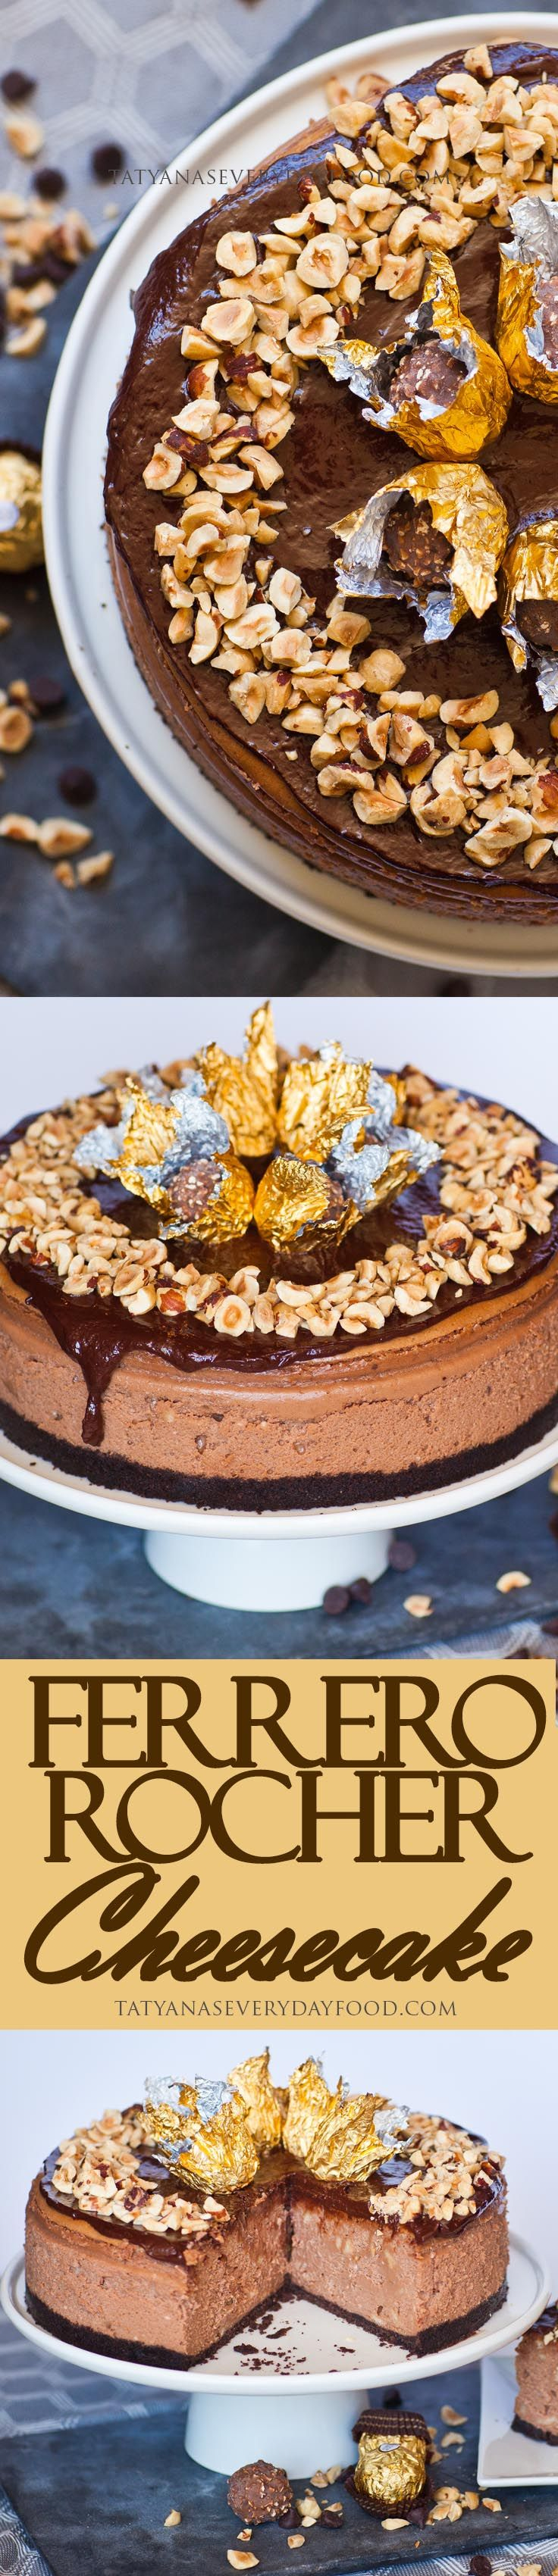 If you're a fan of Ferrero Rocher chocolate candy, you'll love this chocolate-y cheesecake! This luscious and rich Ferrero Rocher cheesecake is made with a whole jar of Nutella, loaded with hazelnuts and hazelnut liqueur and topped with a silky chocolate ganache.  A must-try for the chocolate lover! Watch my video recipe for all the […]